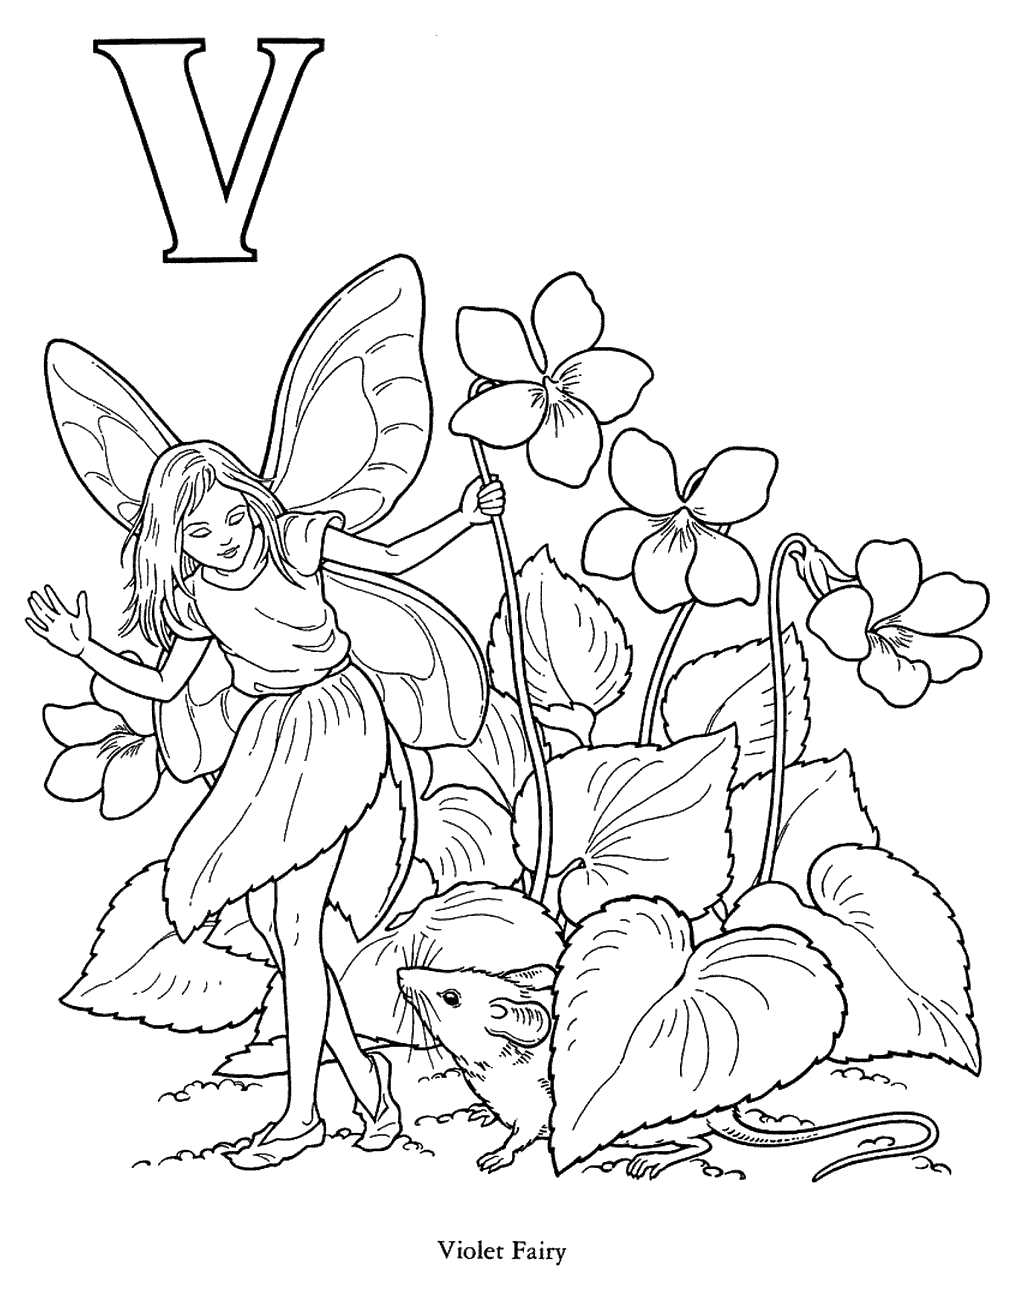 Violet Fairy Coloring Page